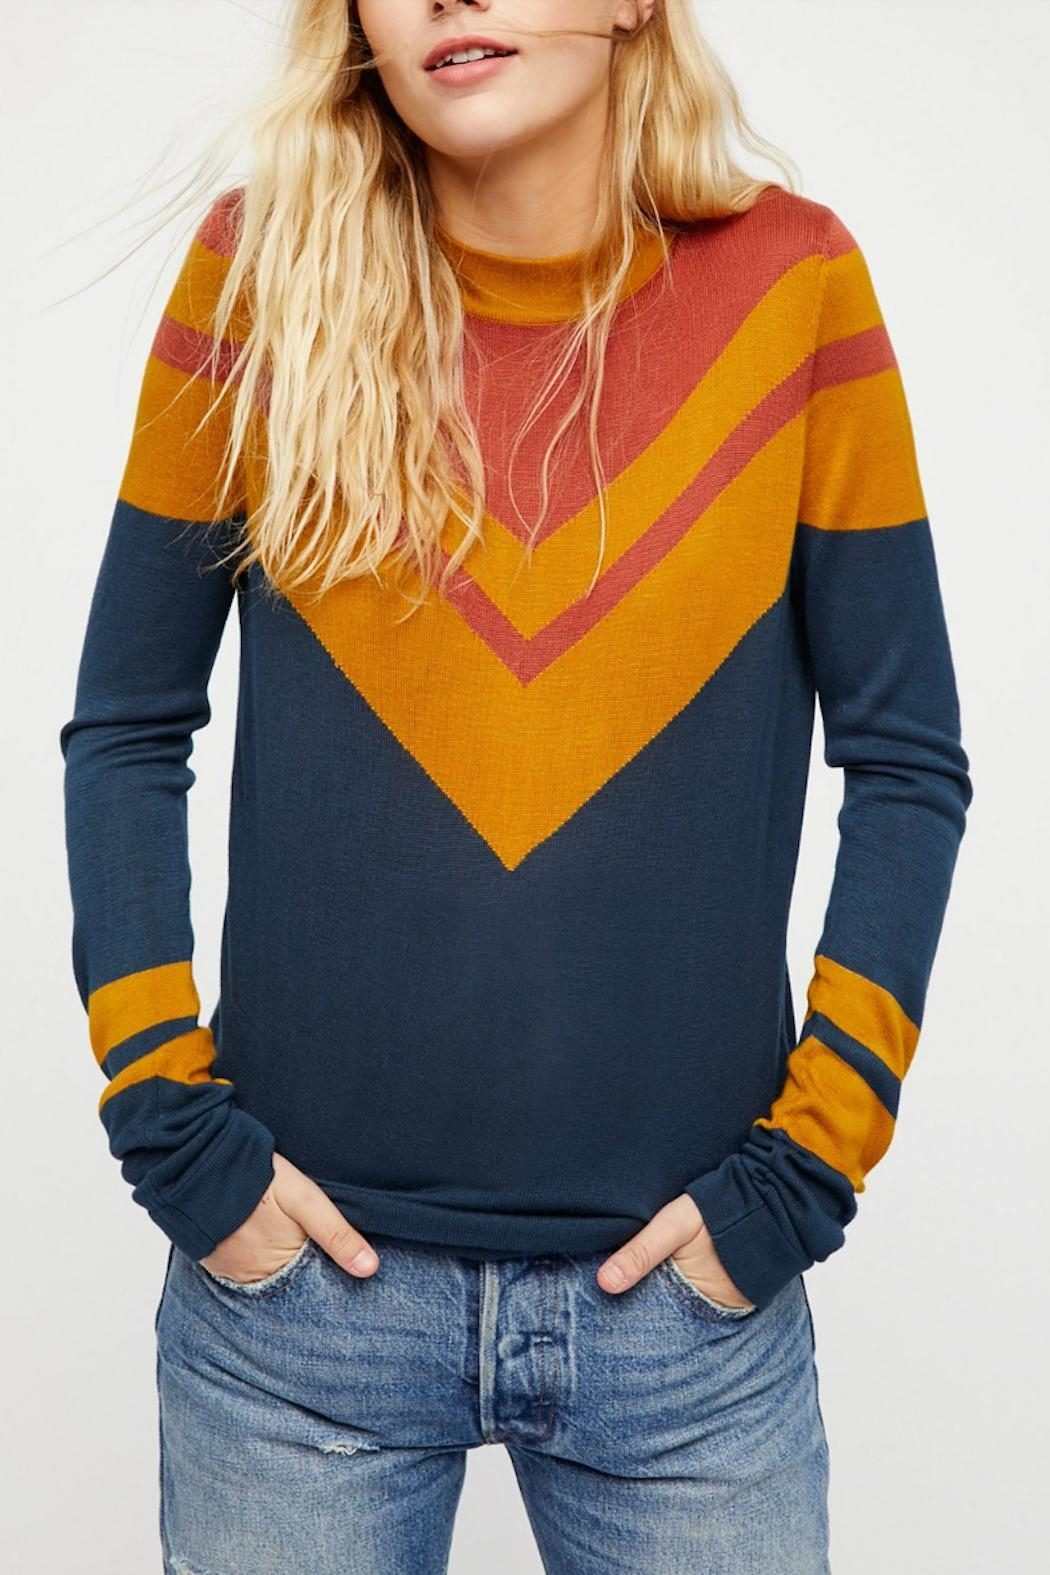 Free People Stripes Crew Sweater - Main Image